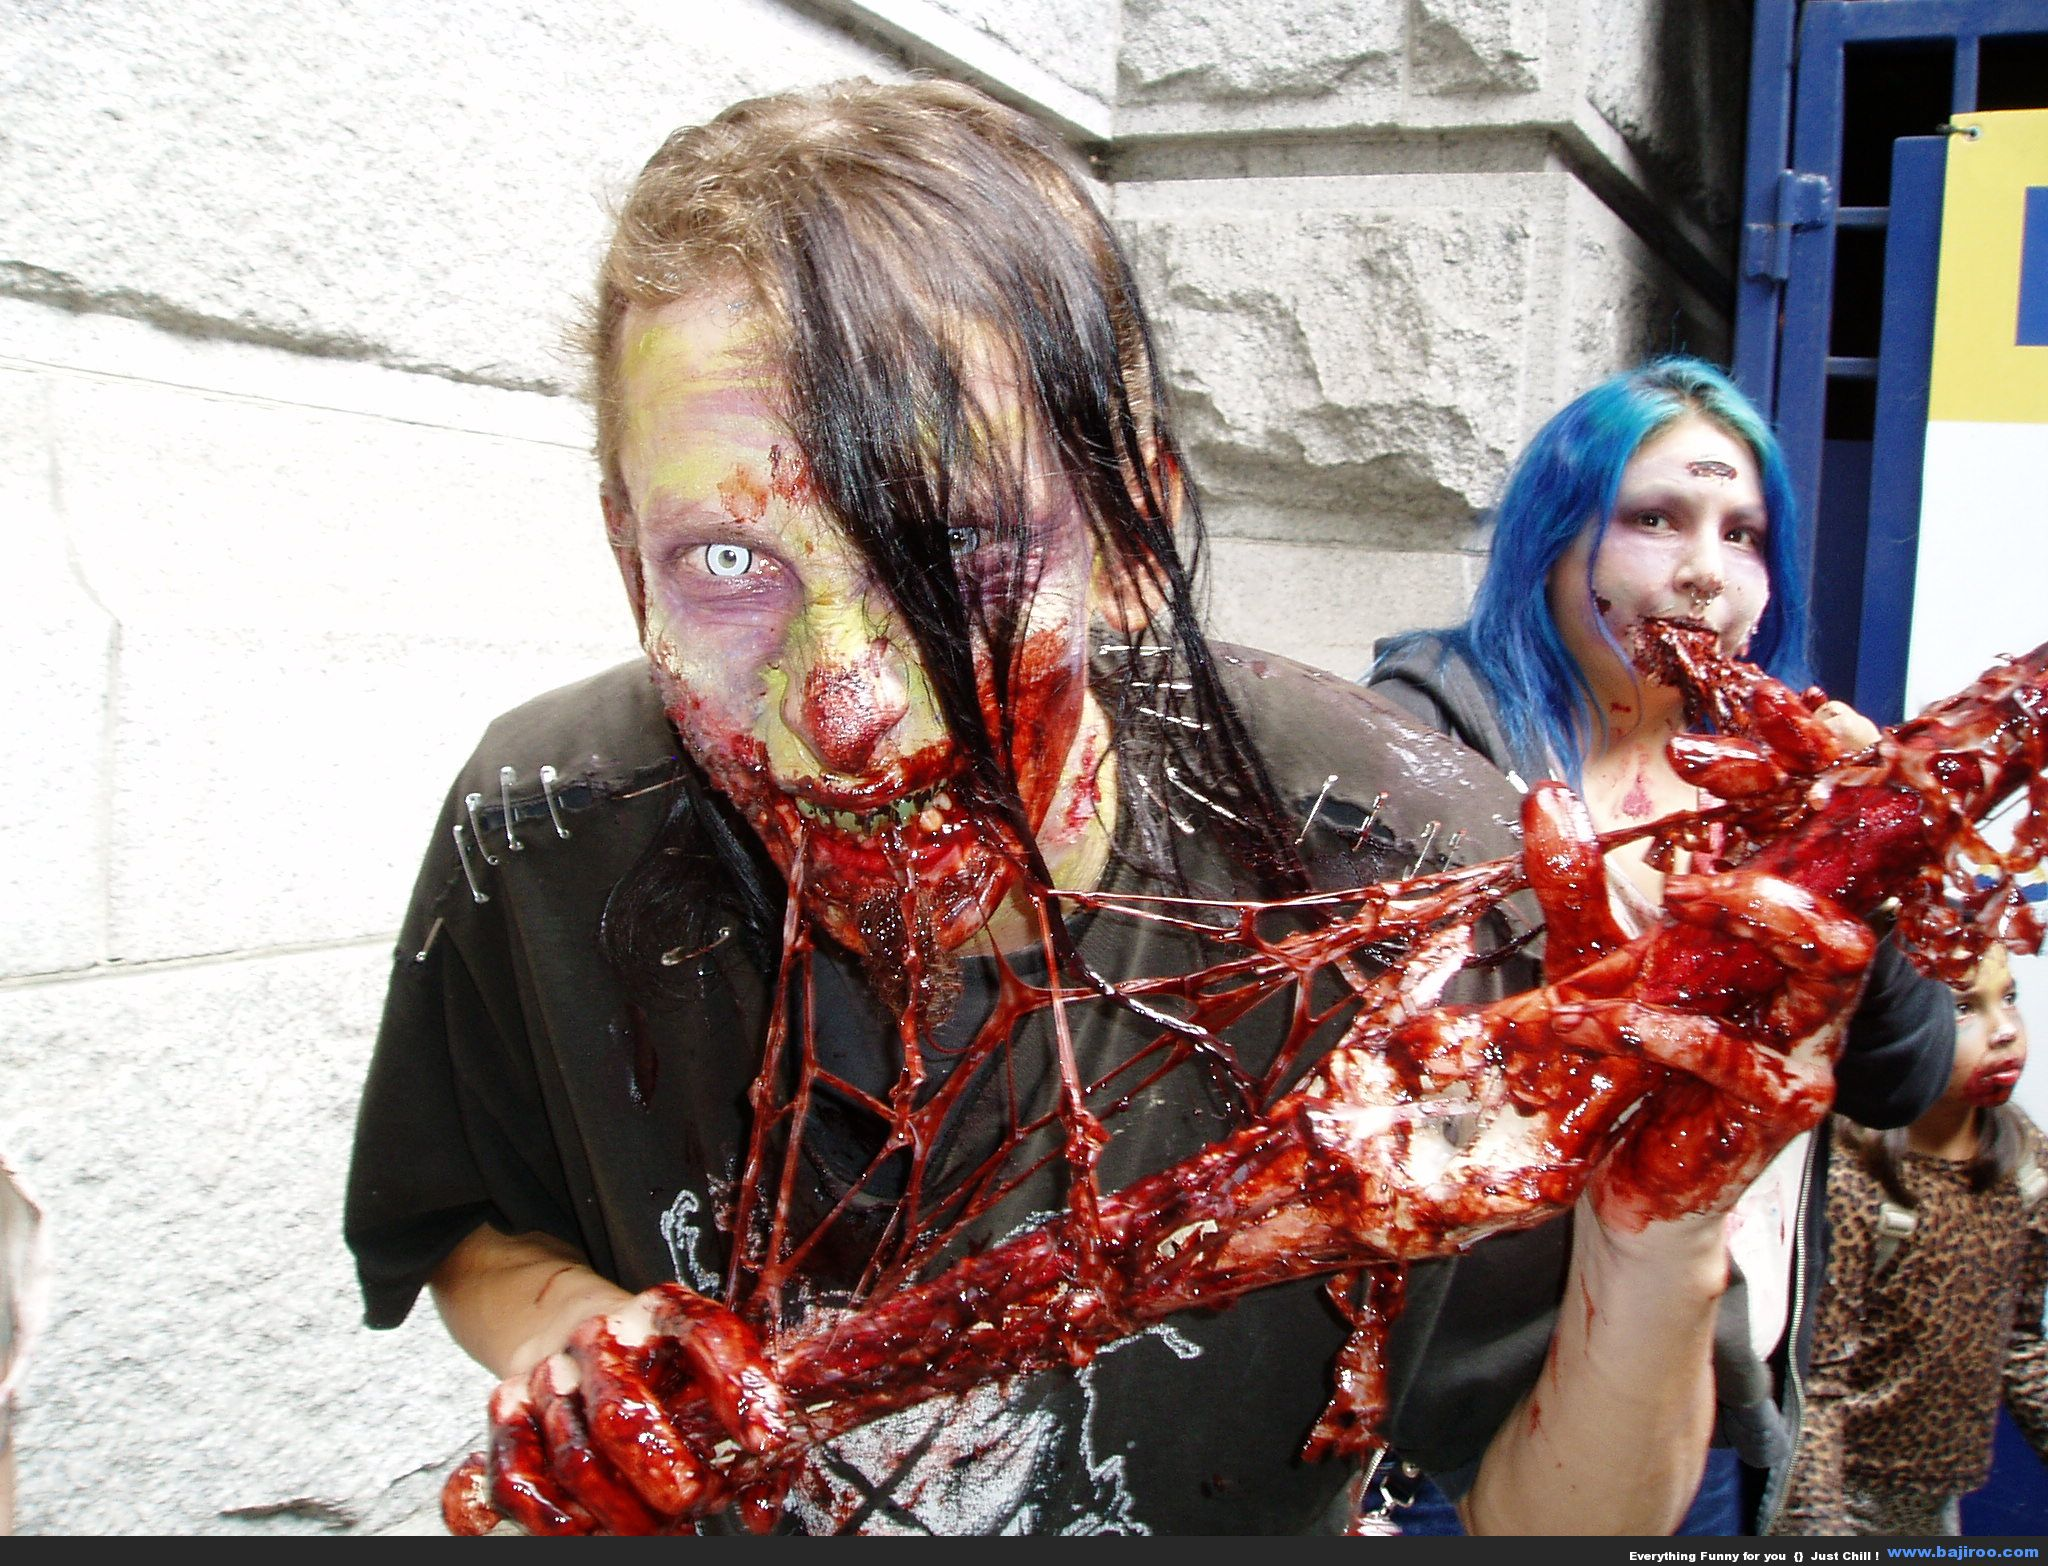 Zombie picture 5